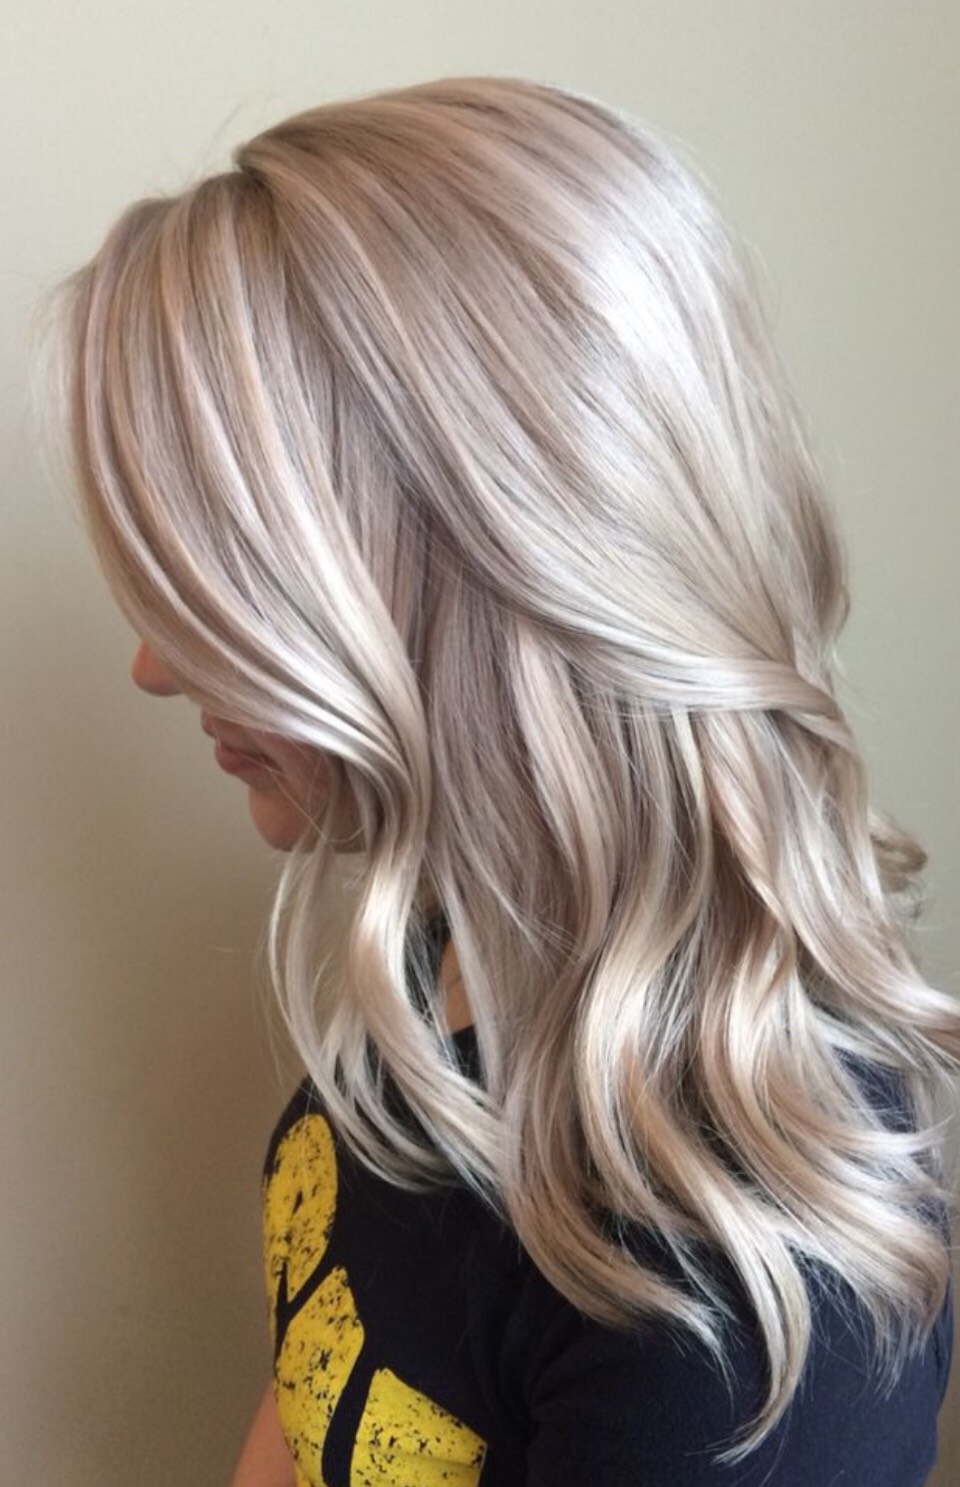 Blonde is such a versatile hair colour! It comes in a whole host of different stunning shades from a warm caramel to an ash blonde a vibrant bleach and